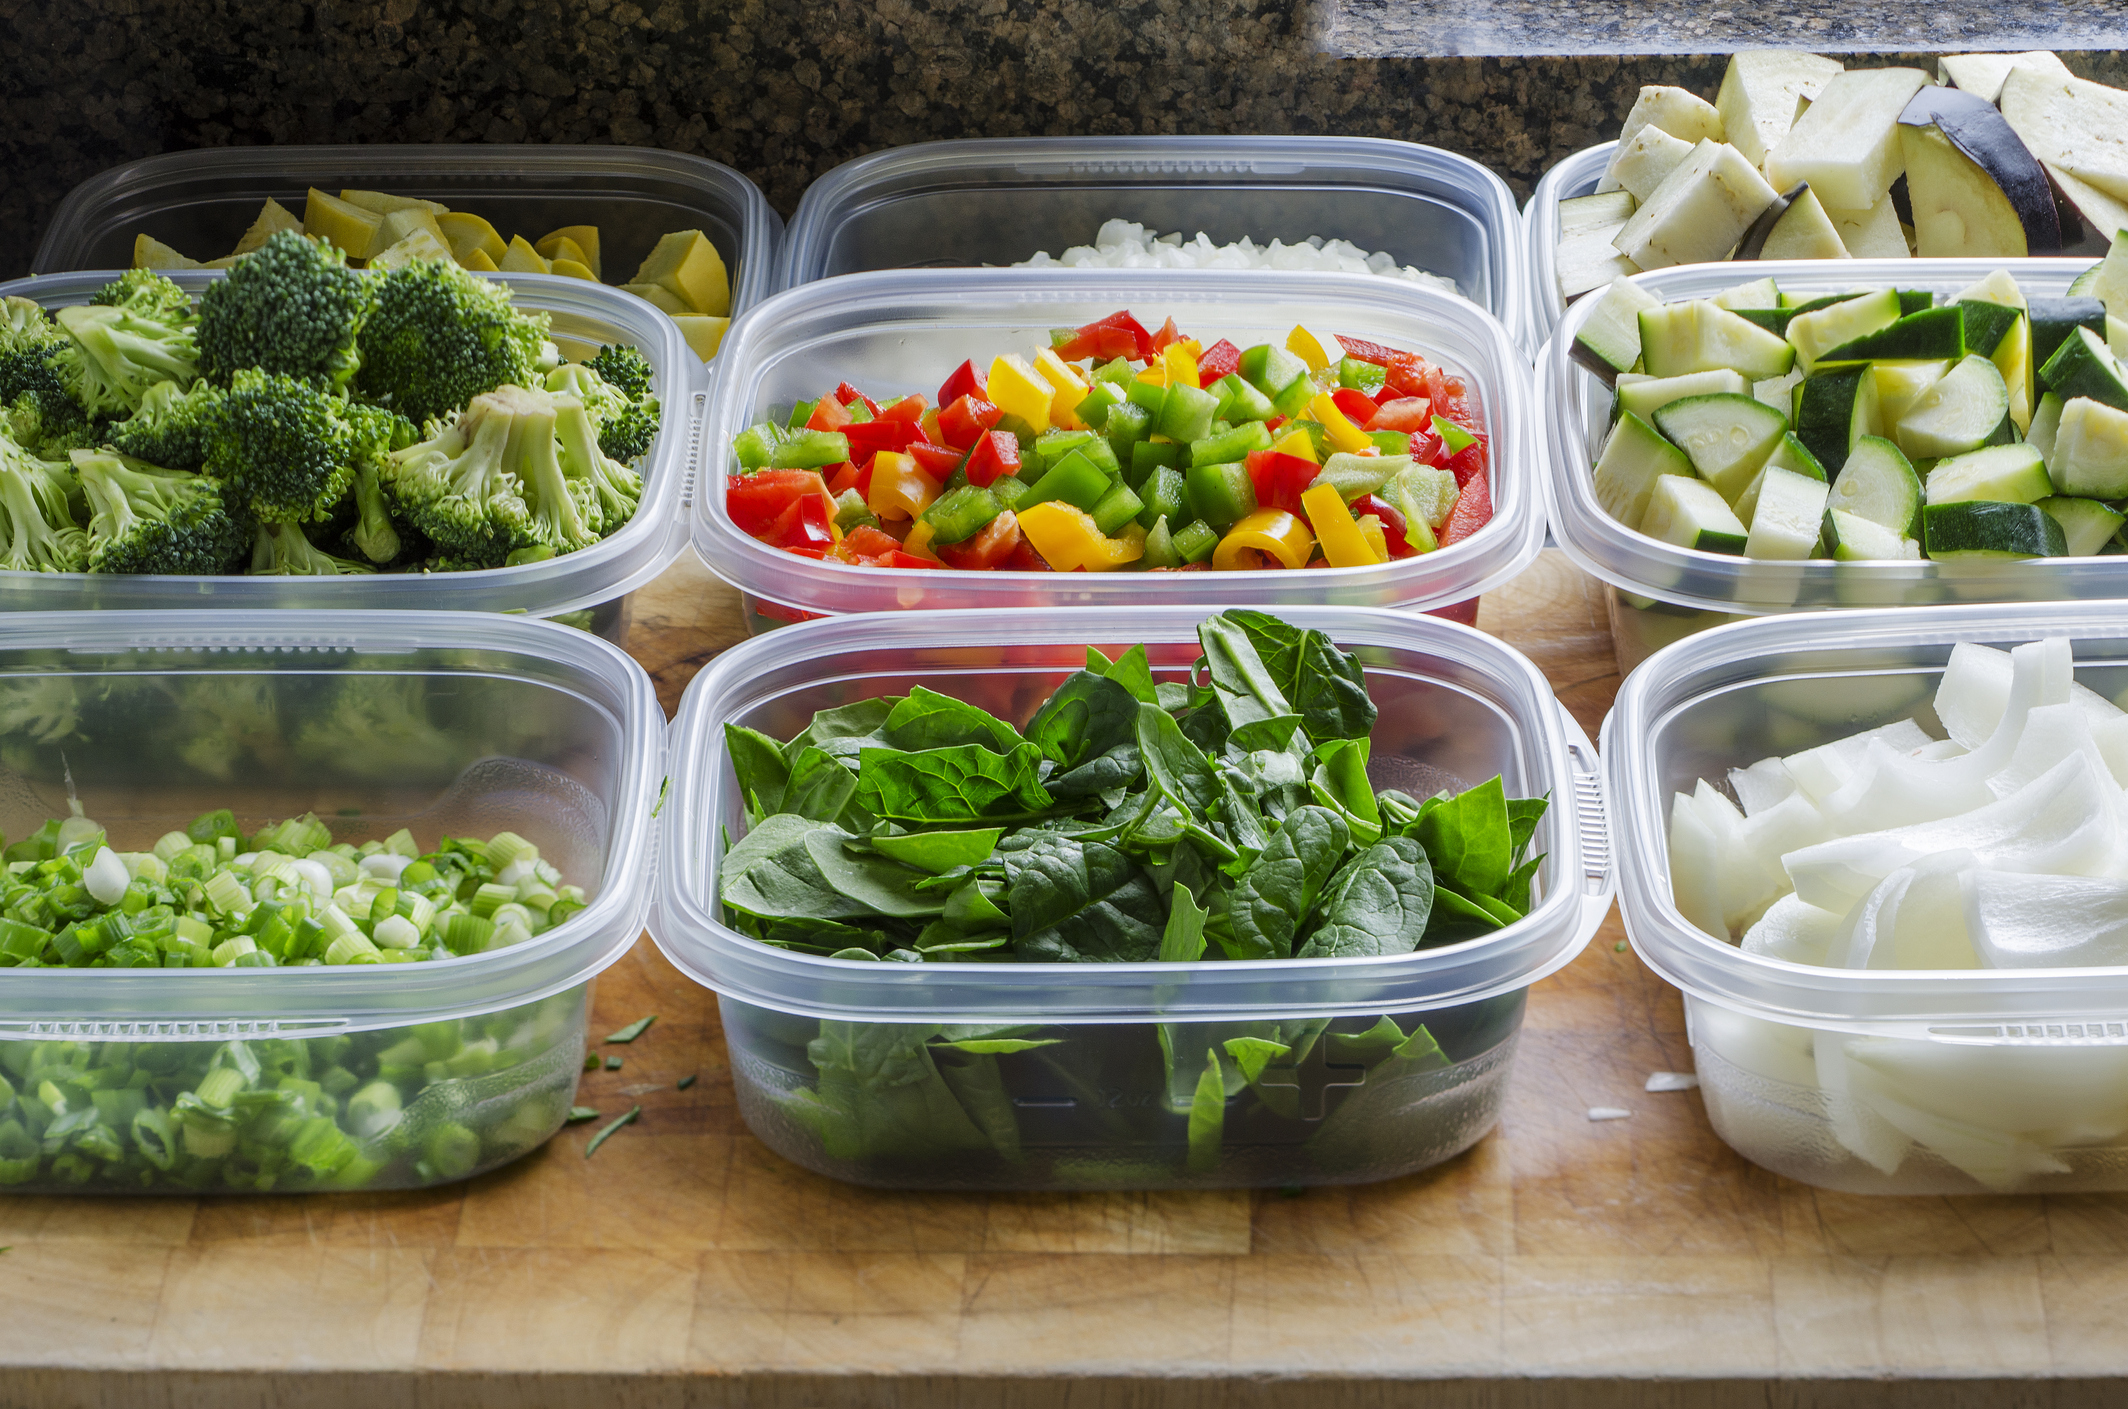 Food in plastic containers for meal prep